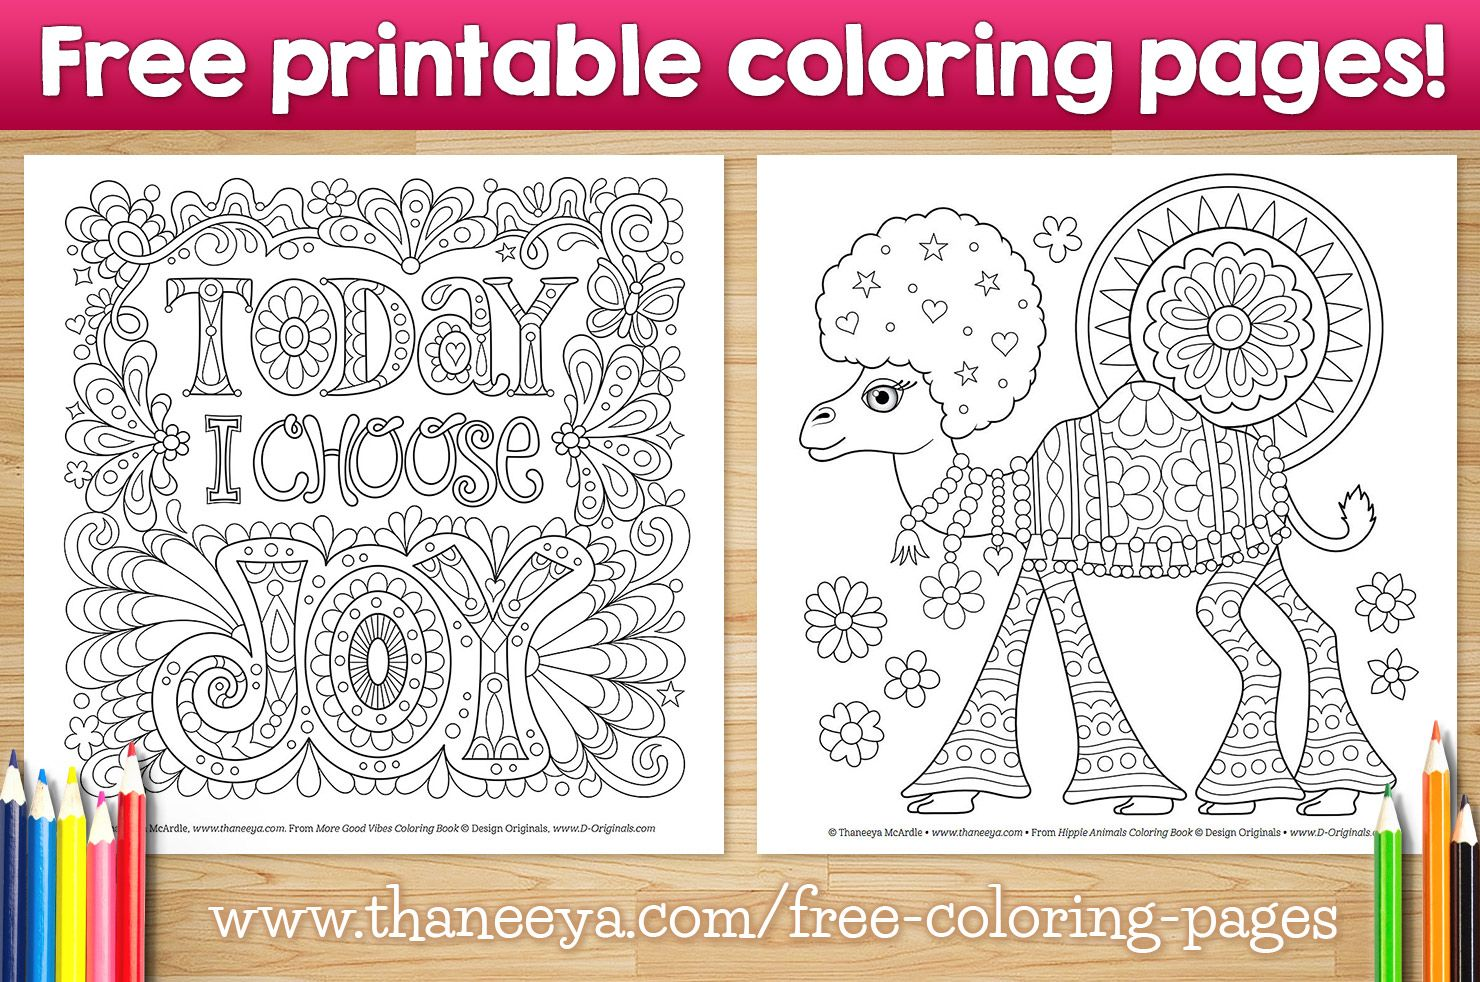 Free Coloring Pages By Thaneeya Mcardle Https Www Thaneeya Com Free Coloring Pages Coloring Pages Free Printable Coloring Pages Free Coloring